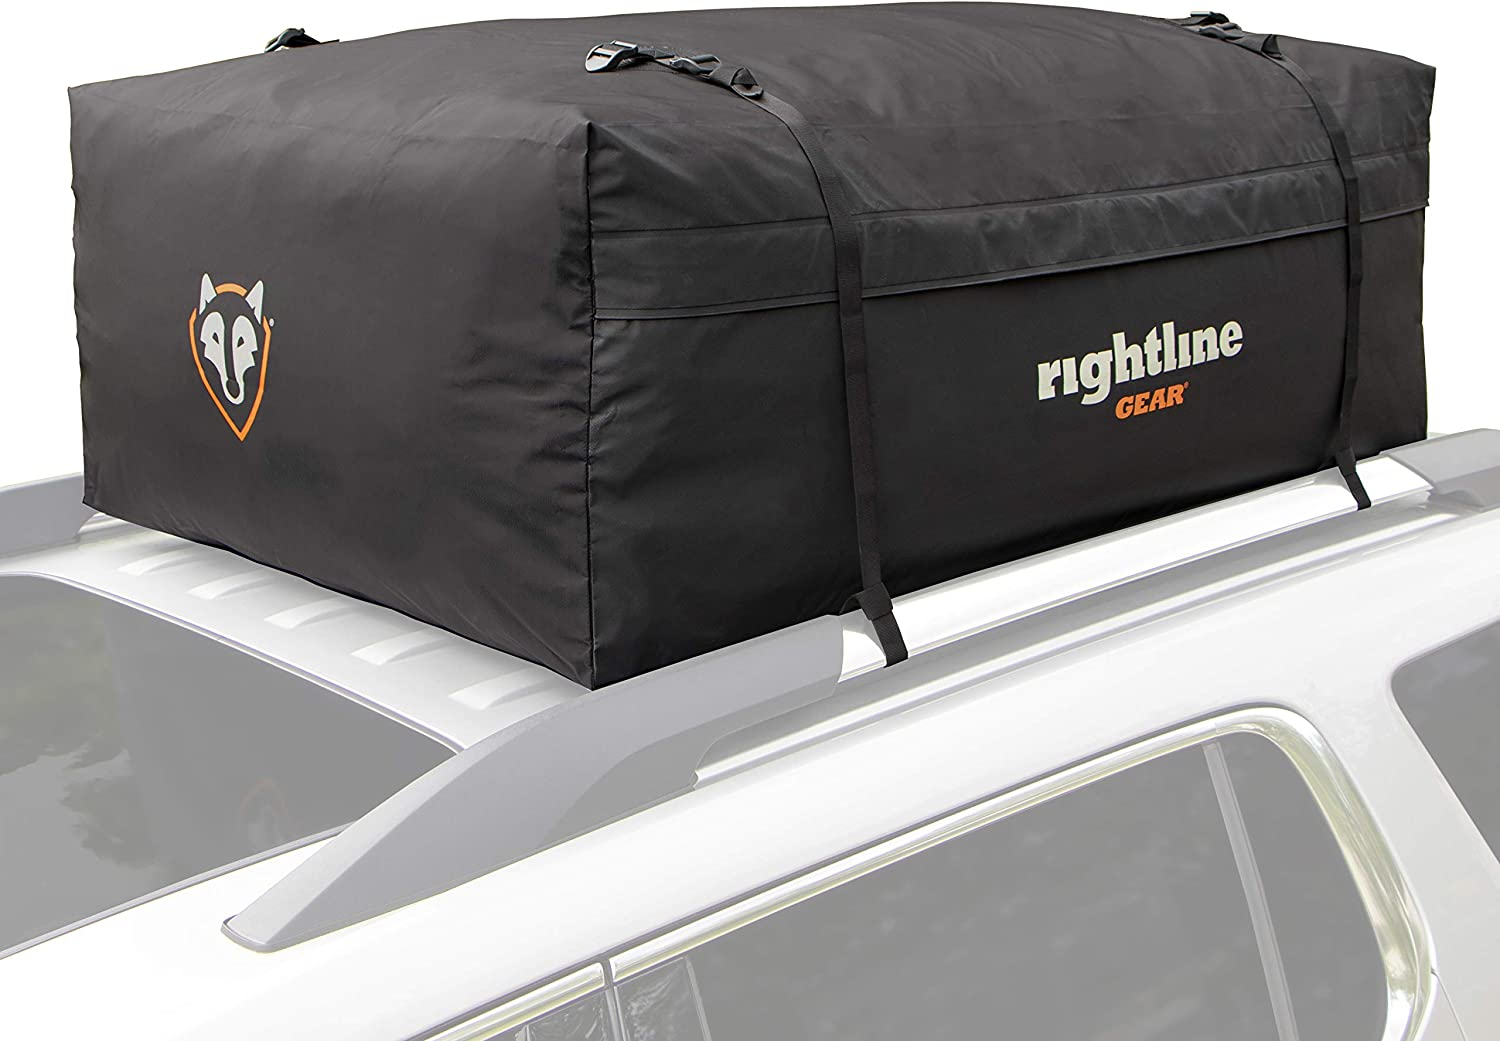 Rightline Gear Range 3 Car Top Carrier, 18 cu ft, Weatherproof +, Attaches With or Without Roof Rack